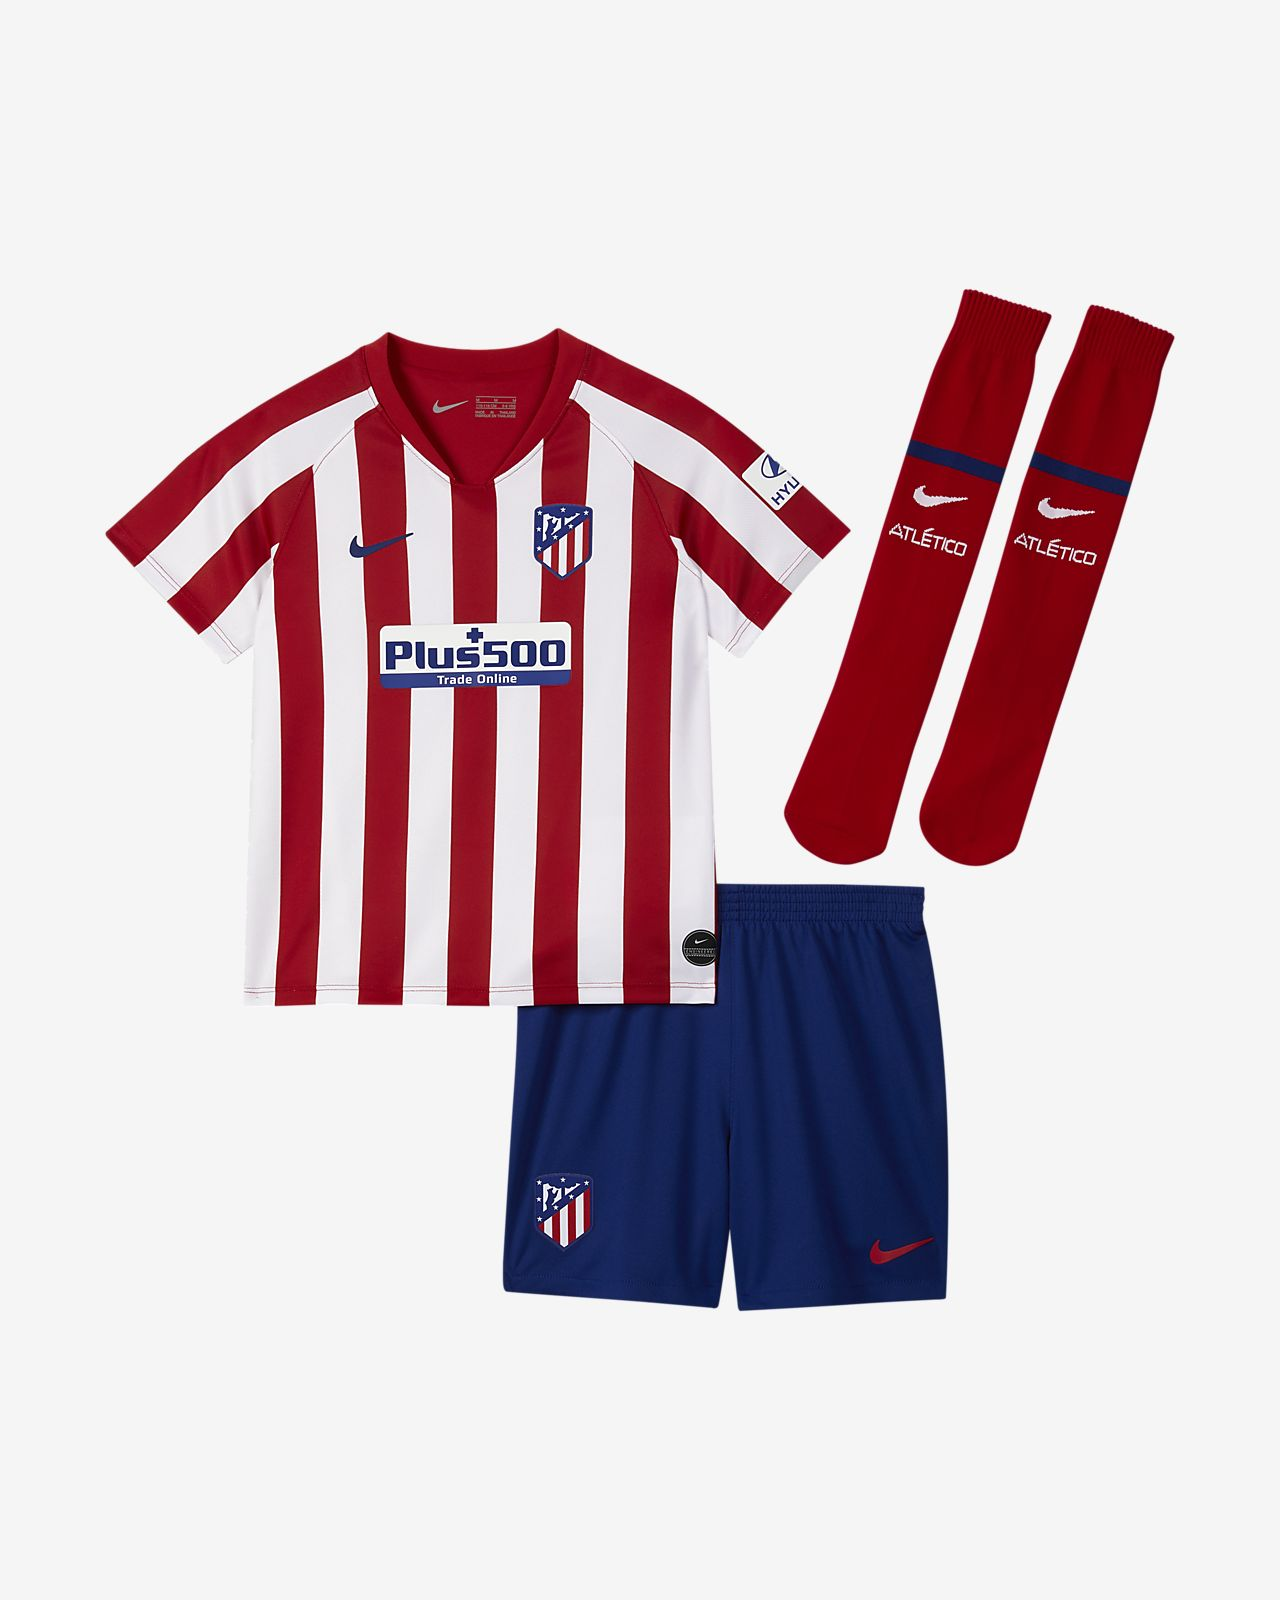 09840bed9 Atlético de Madrid 2019/20 Home Younger Kids' Football Kit. Nike.com SI